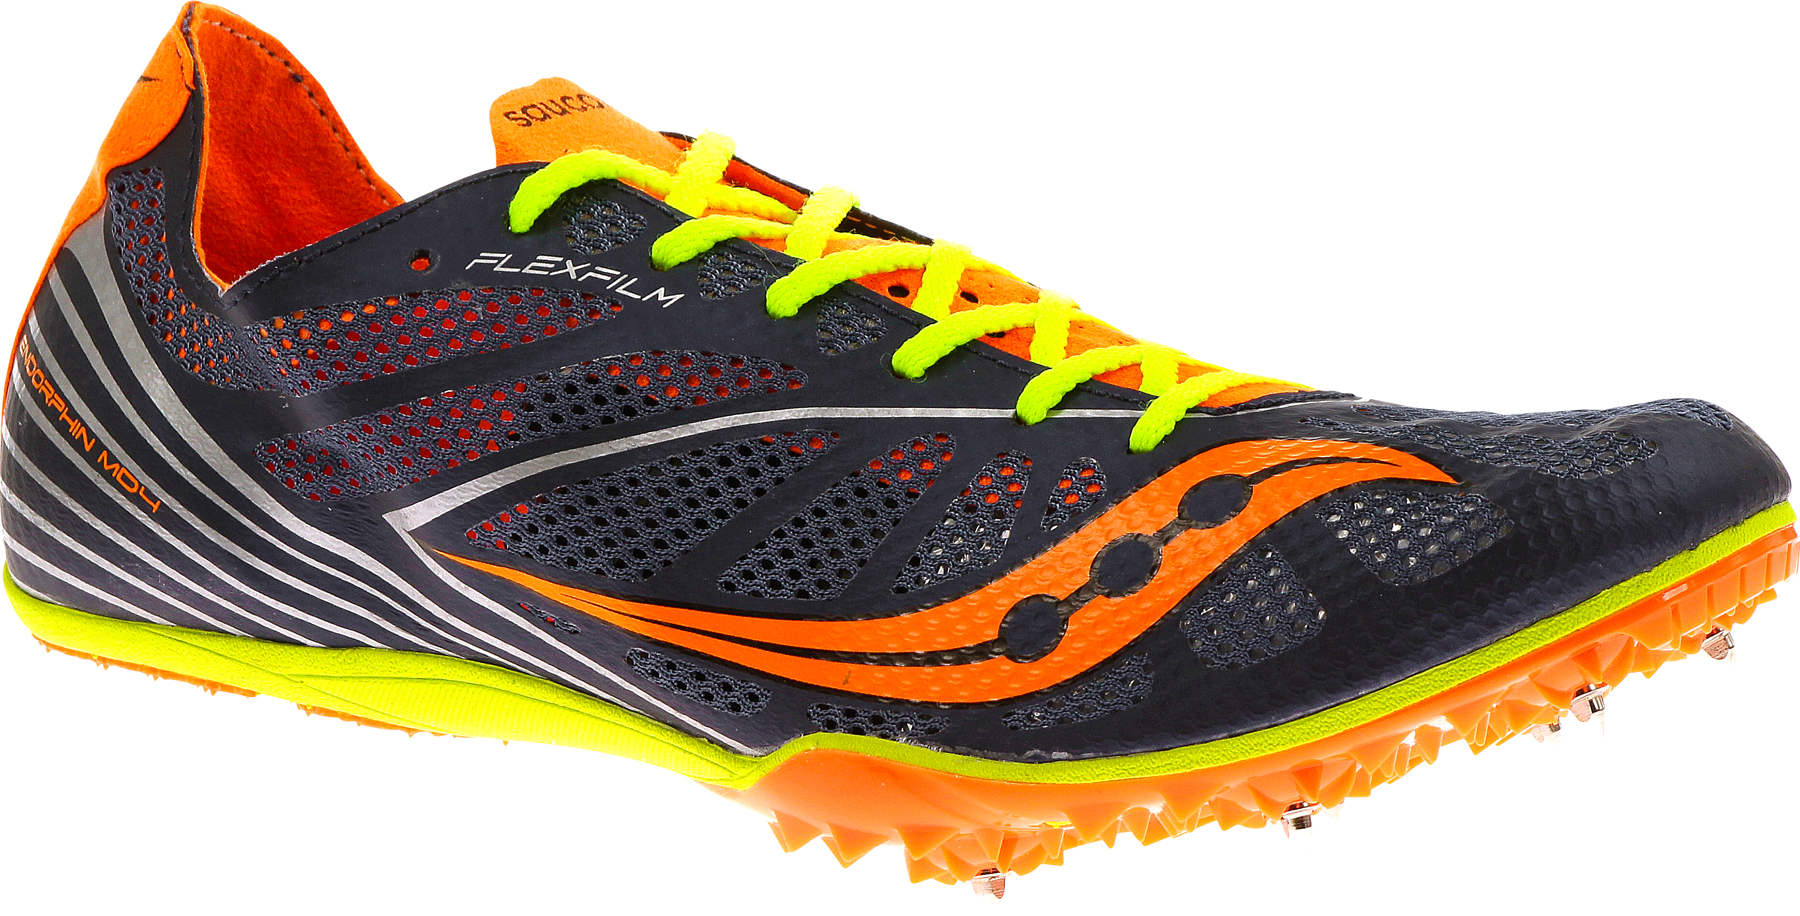 Shoes Before 1800 Saucony Endorphin Md Shoes Ss Shoes Run Spike